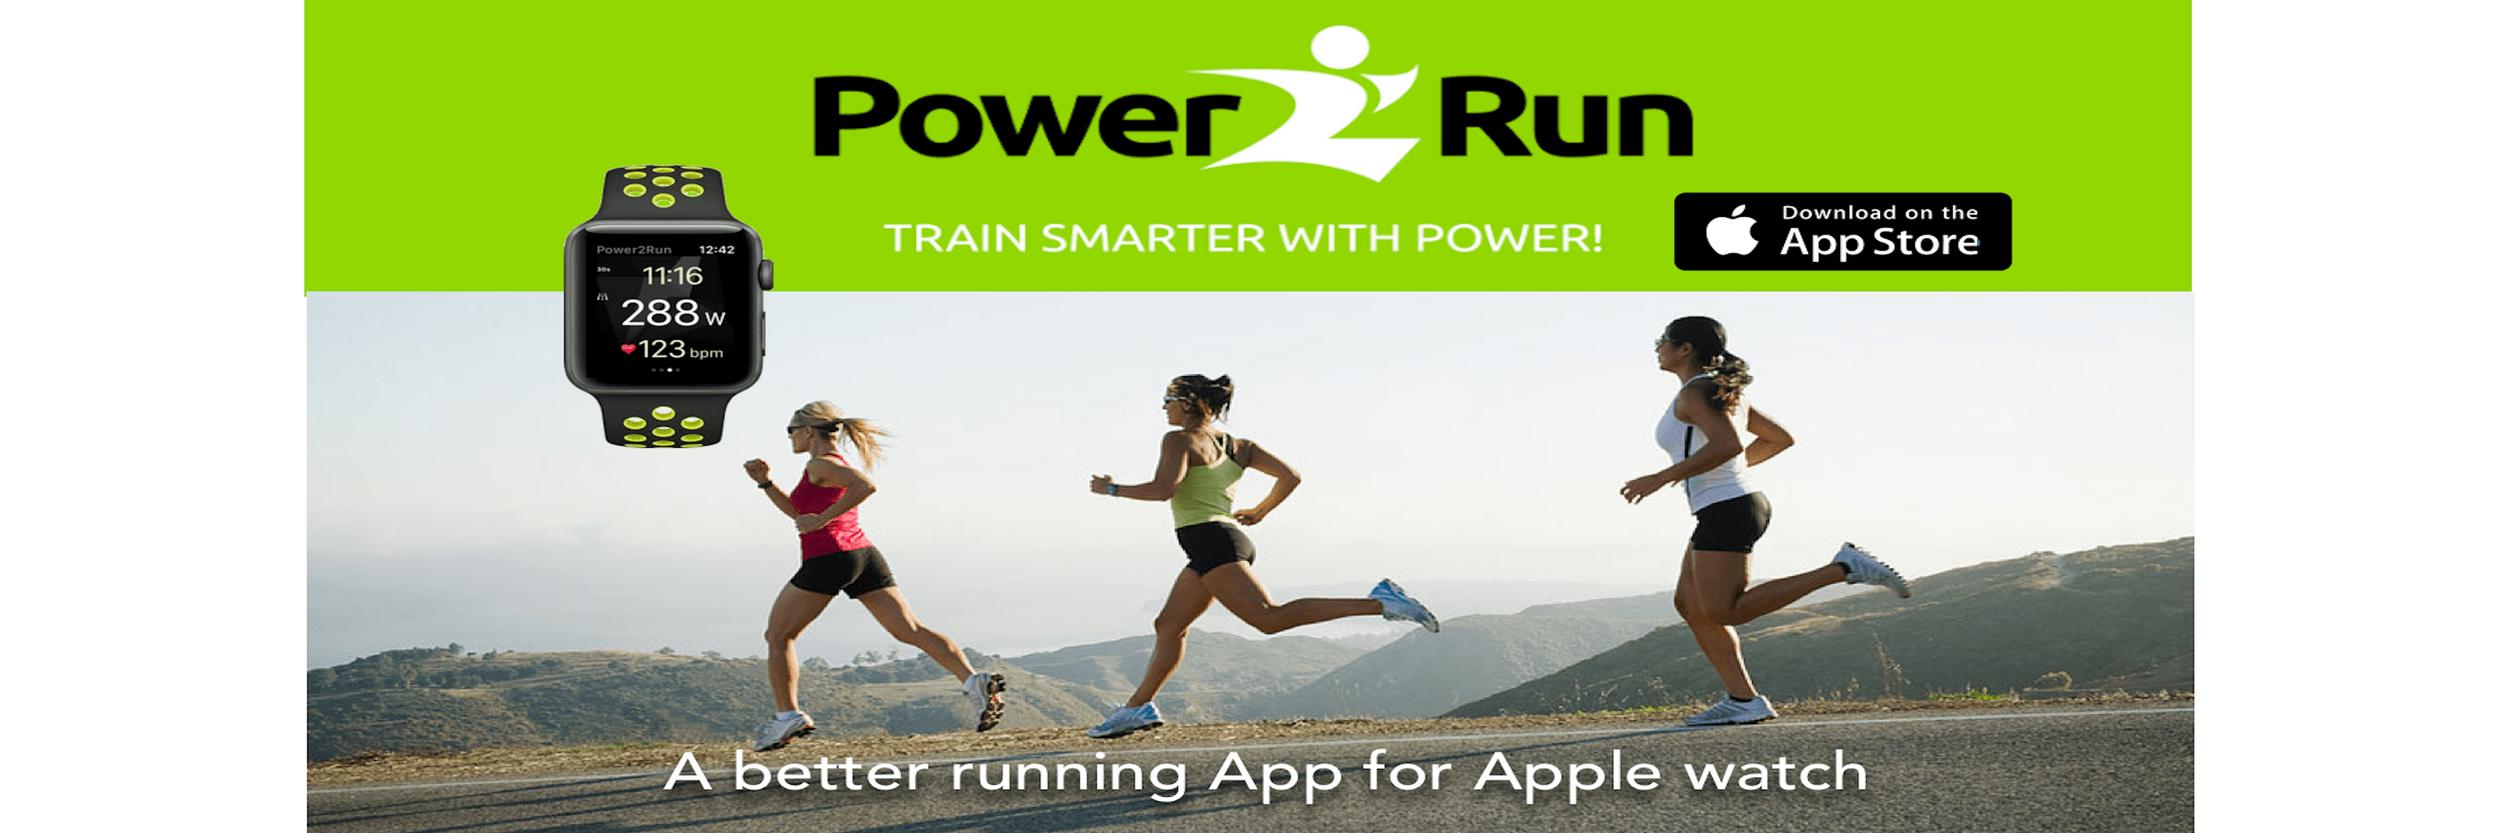 Running Jogging App Power2run Questions And Answers For Running With A Power Meter